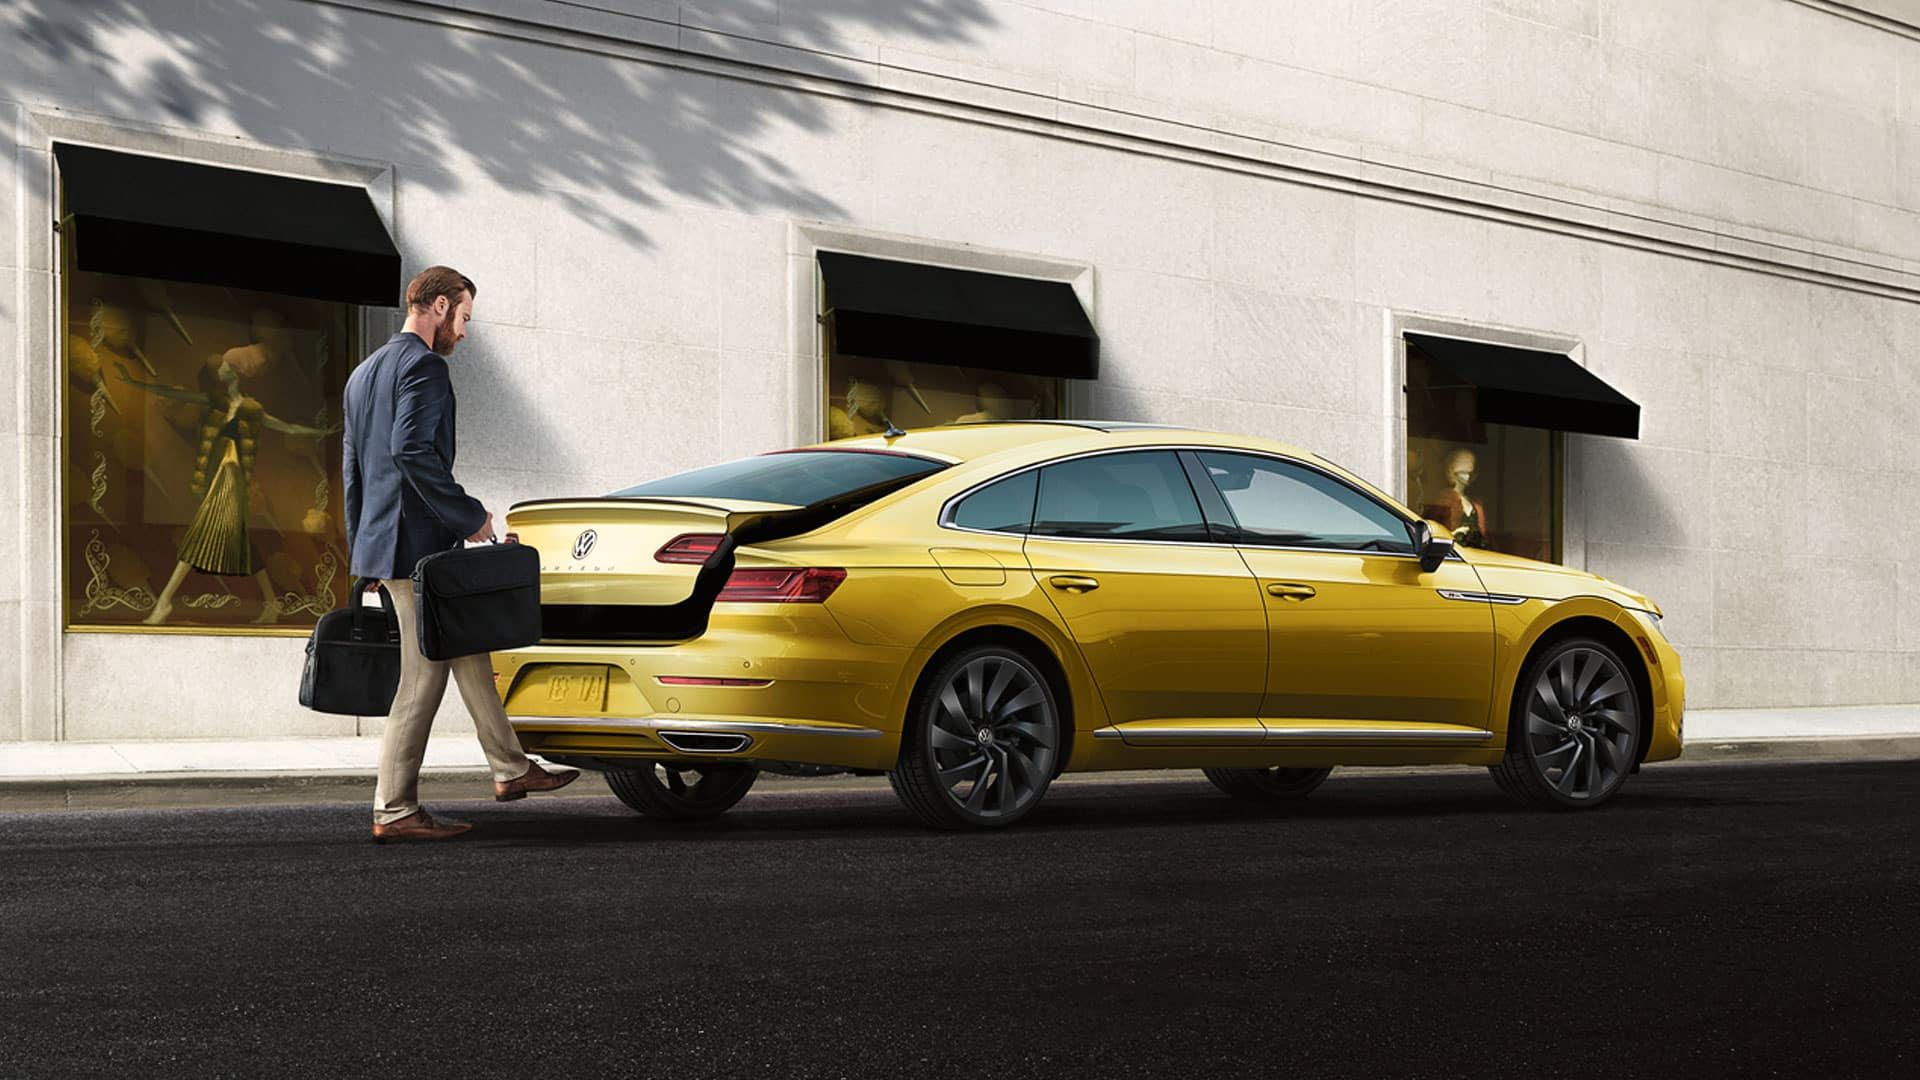 Man with bags opening the trunk of a Gold Arteon